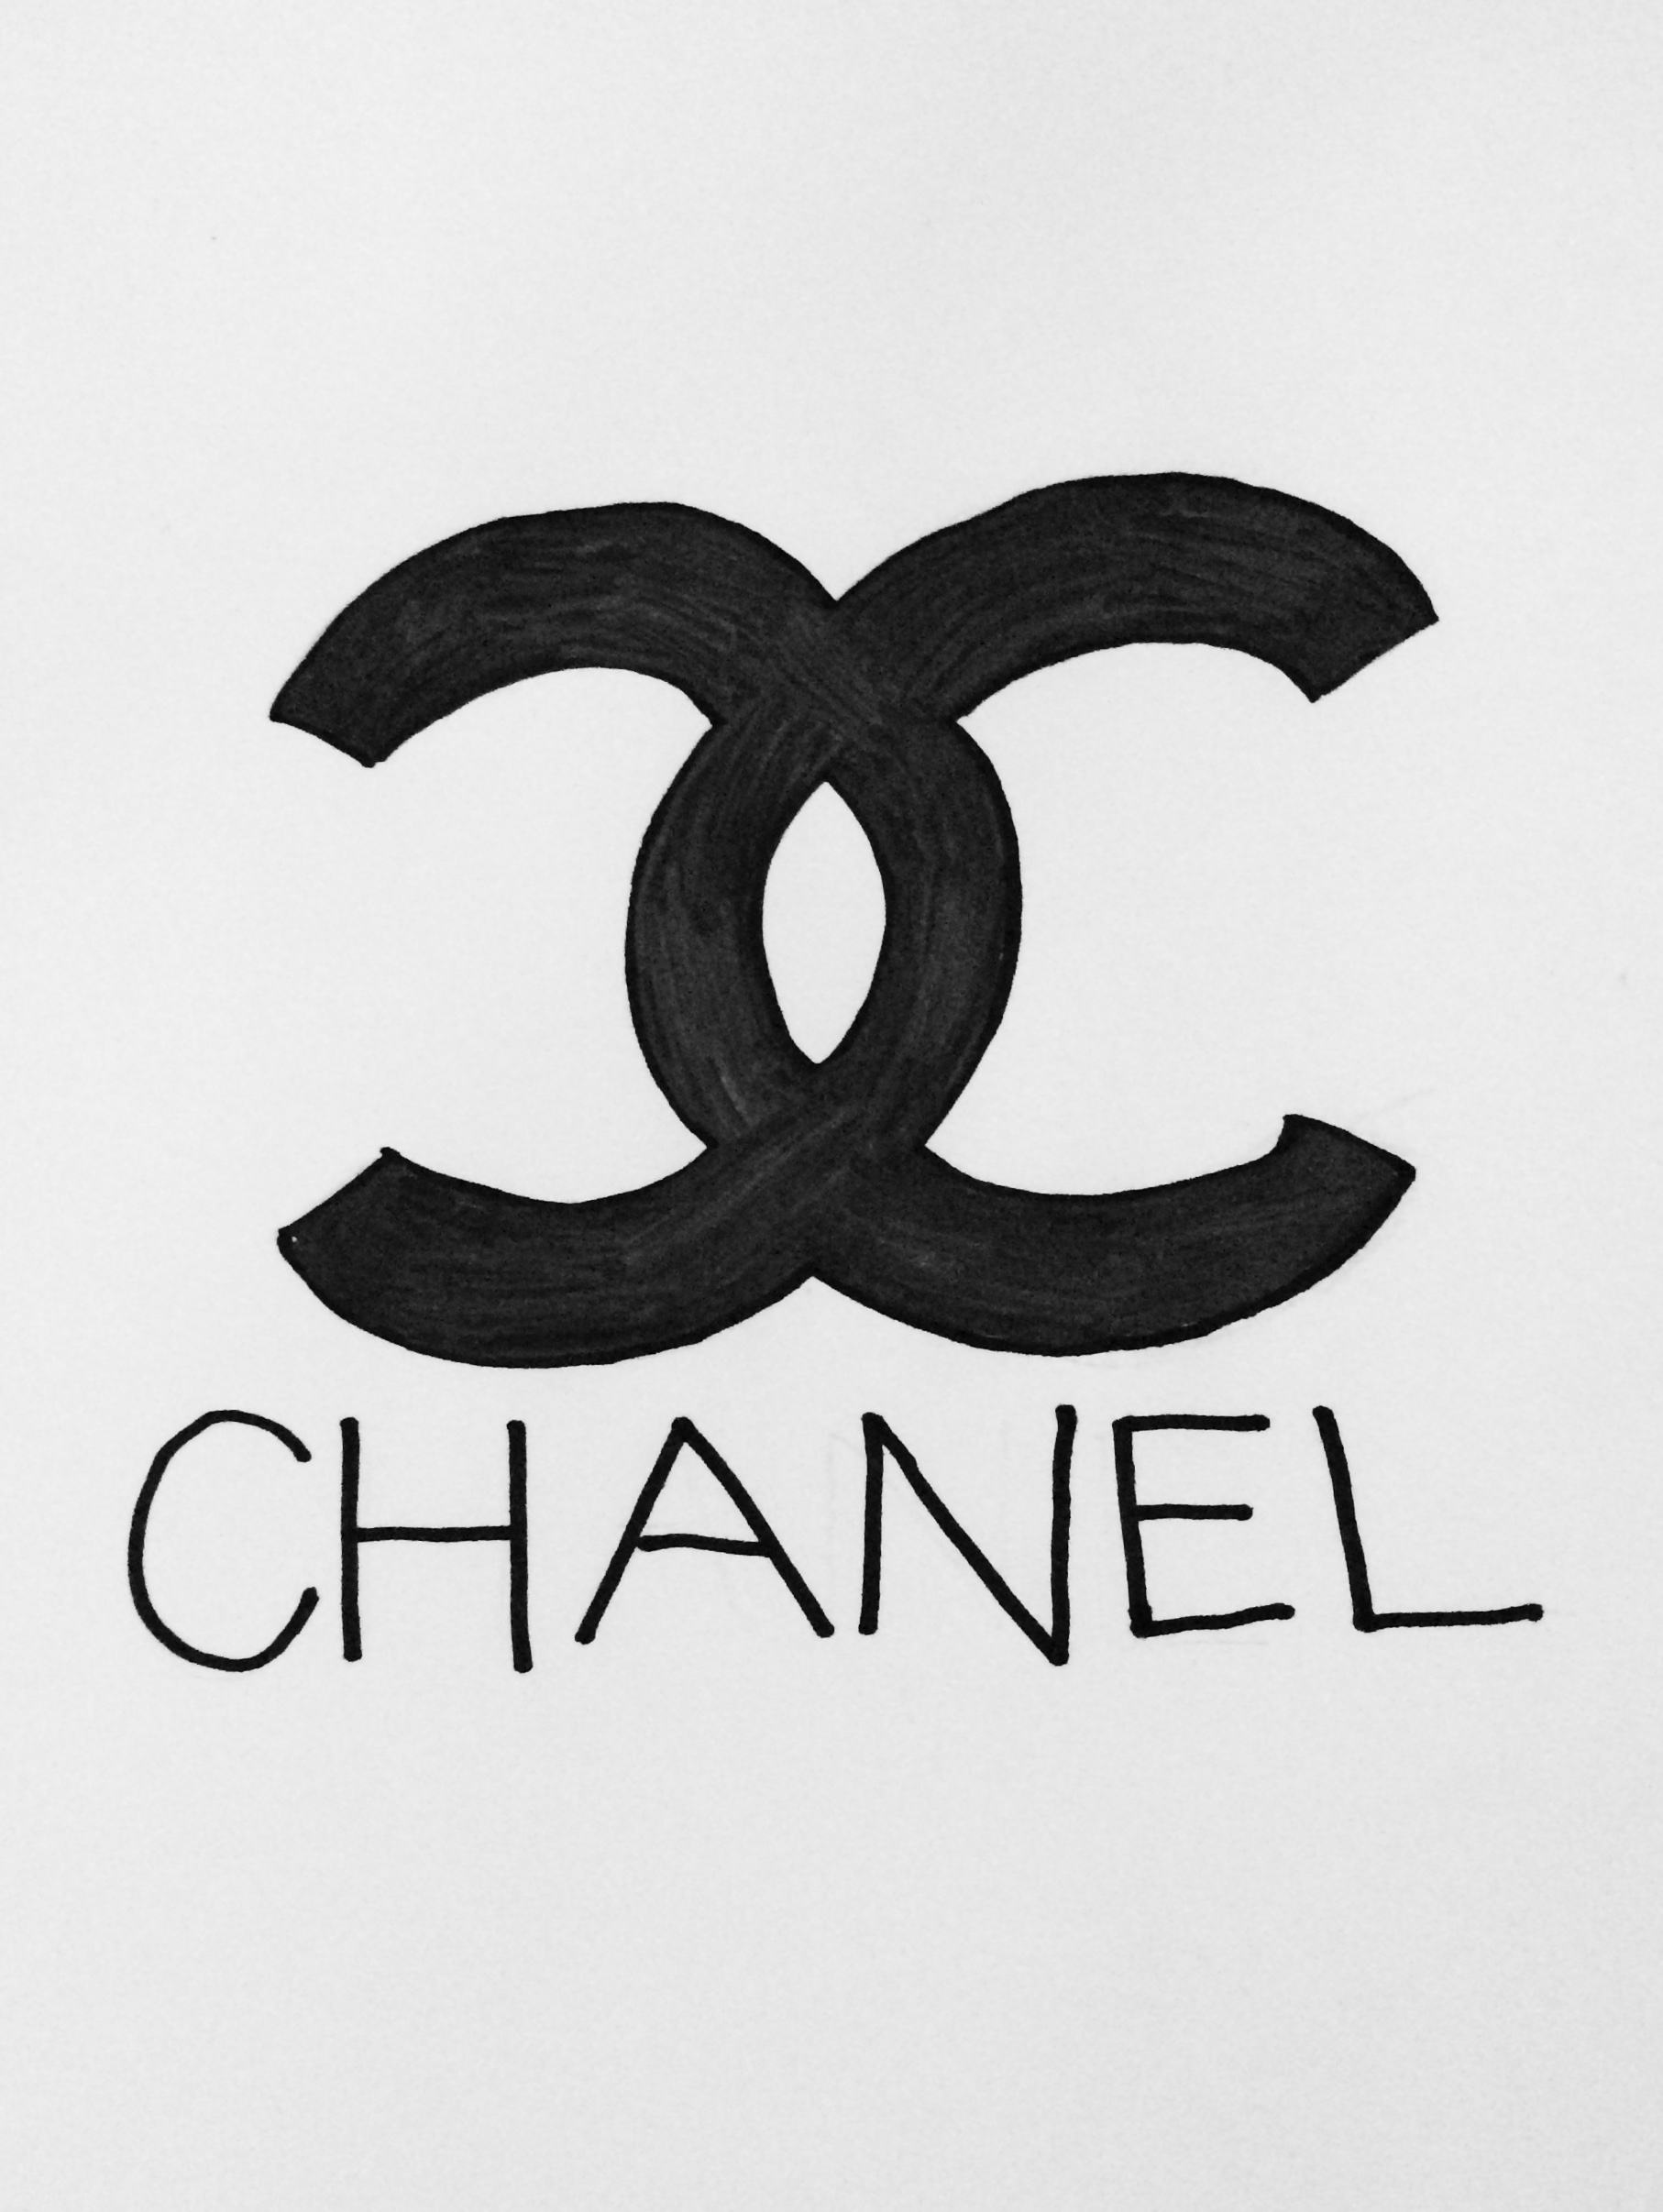 my attempt at the chanel logo drawingsbyjanice